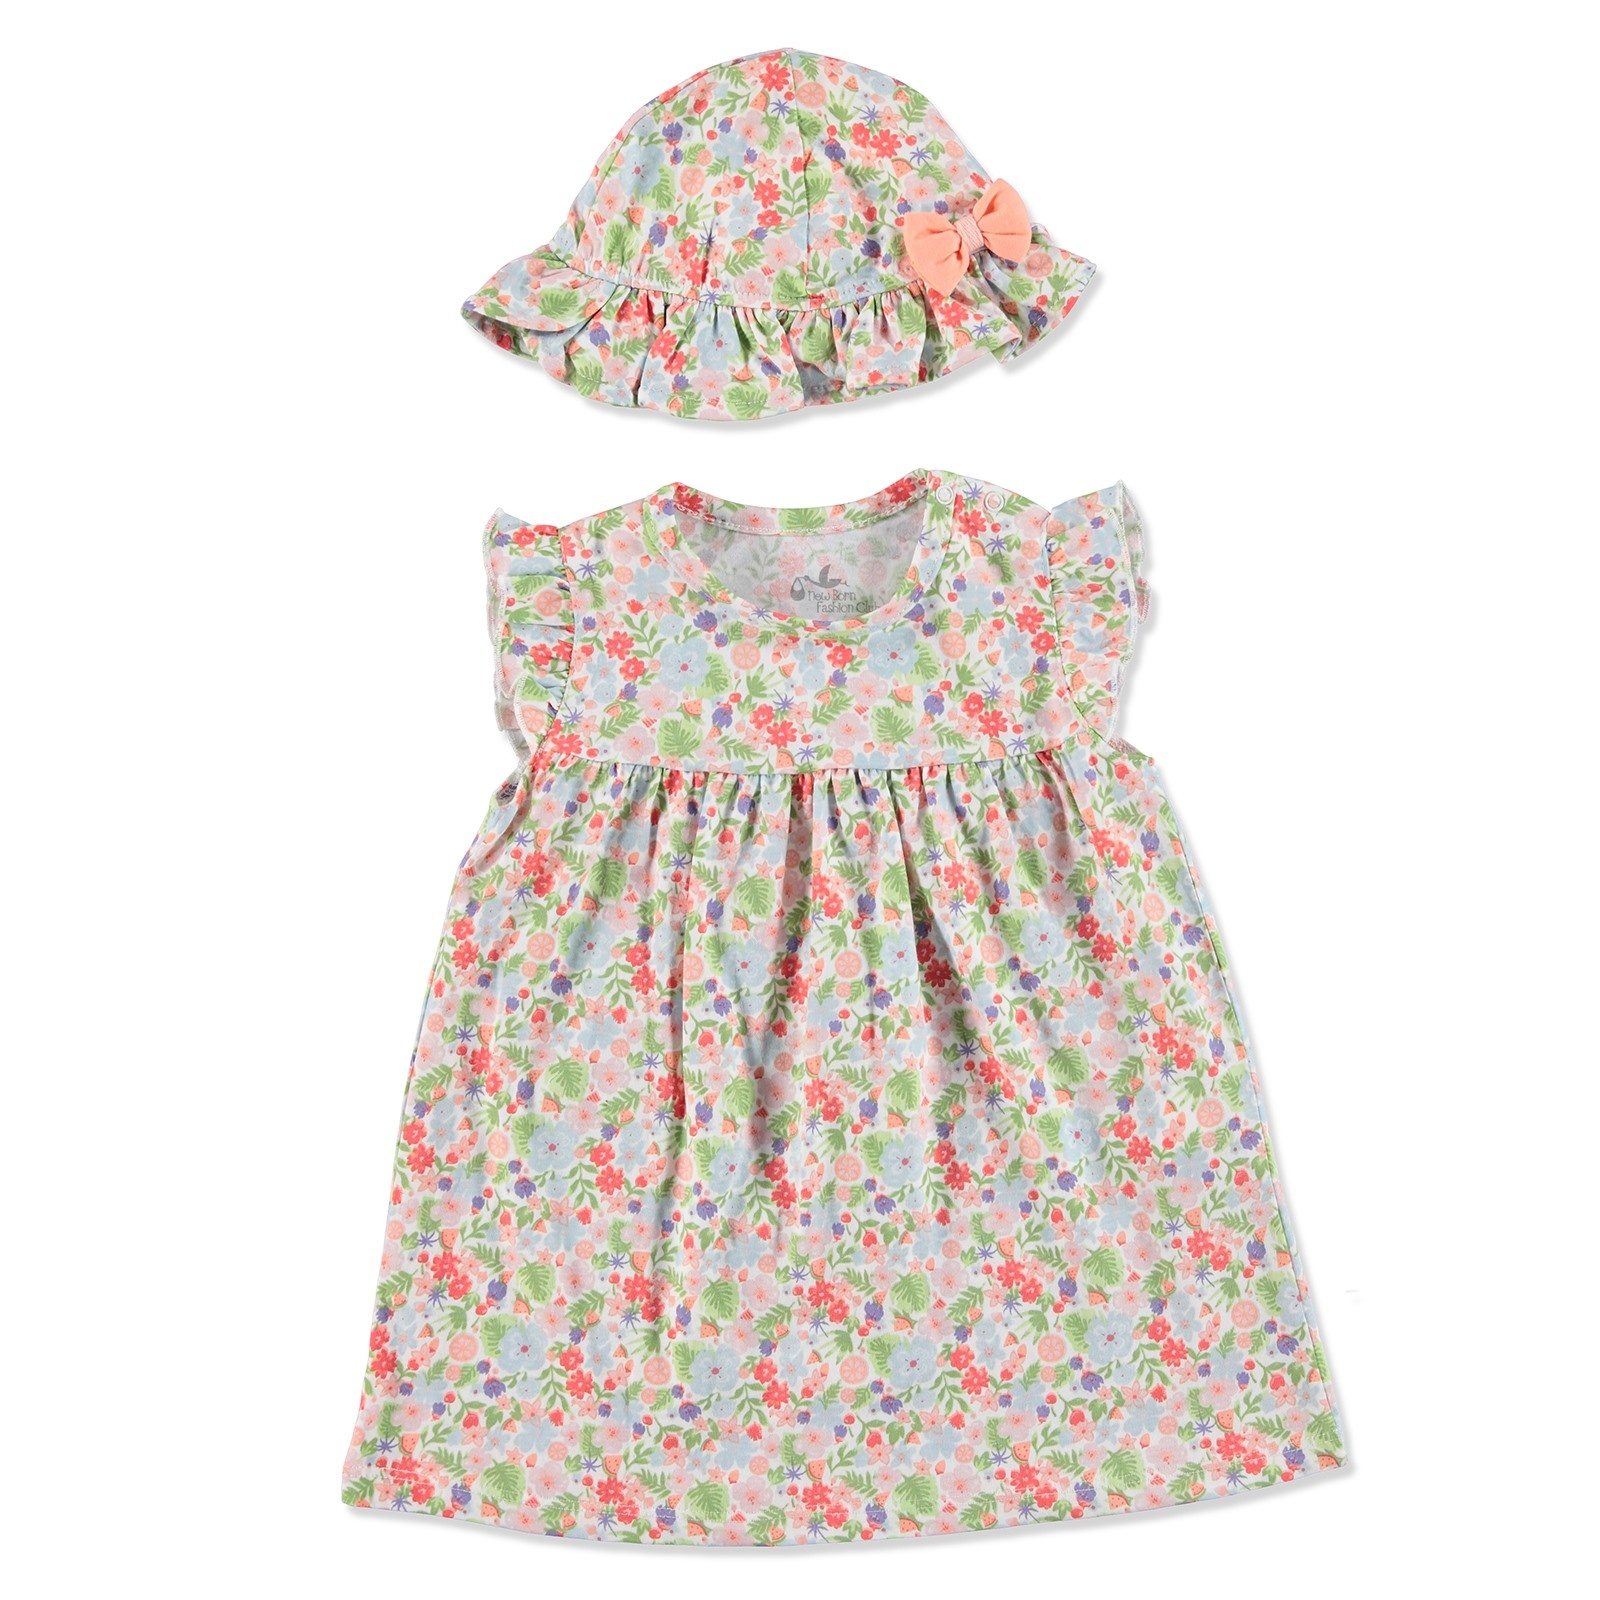 Ebebek Newborn Fashion Club Tropical Summer Baby Girl Dress Hat